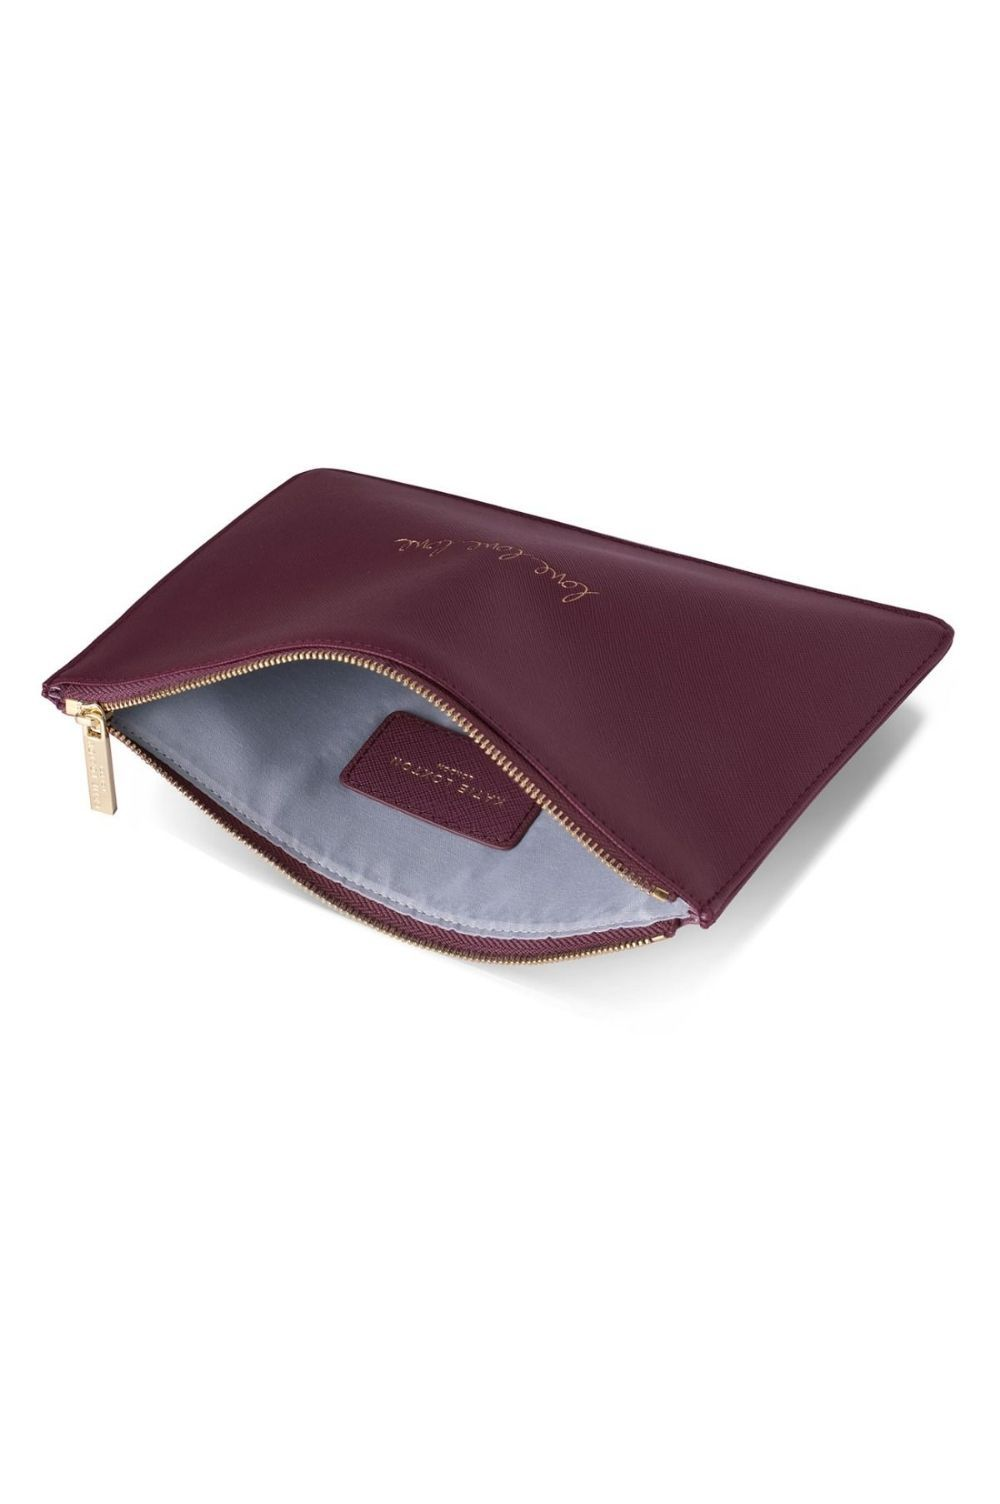 Burgundy Gift Bag Katie Loxton LOVE LOVE LOVE Perfect Pouch Clutch Bag